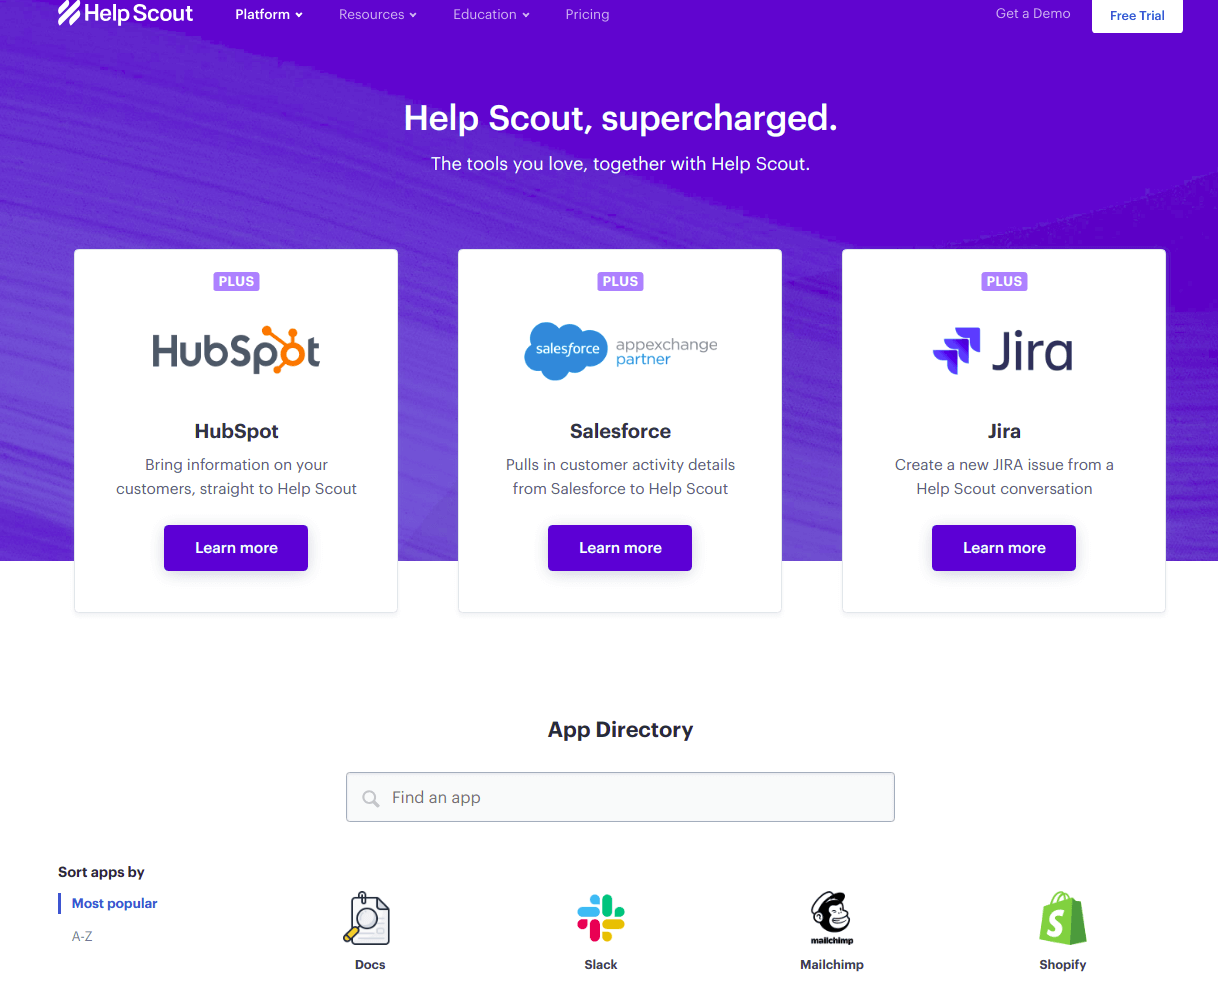 Help Scout apps and integrations